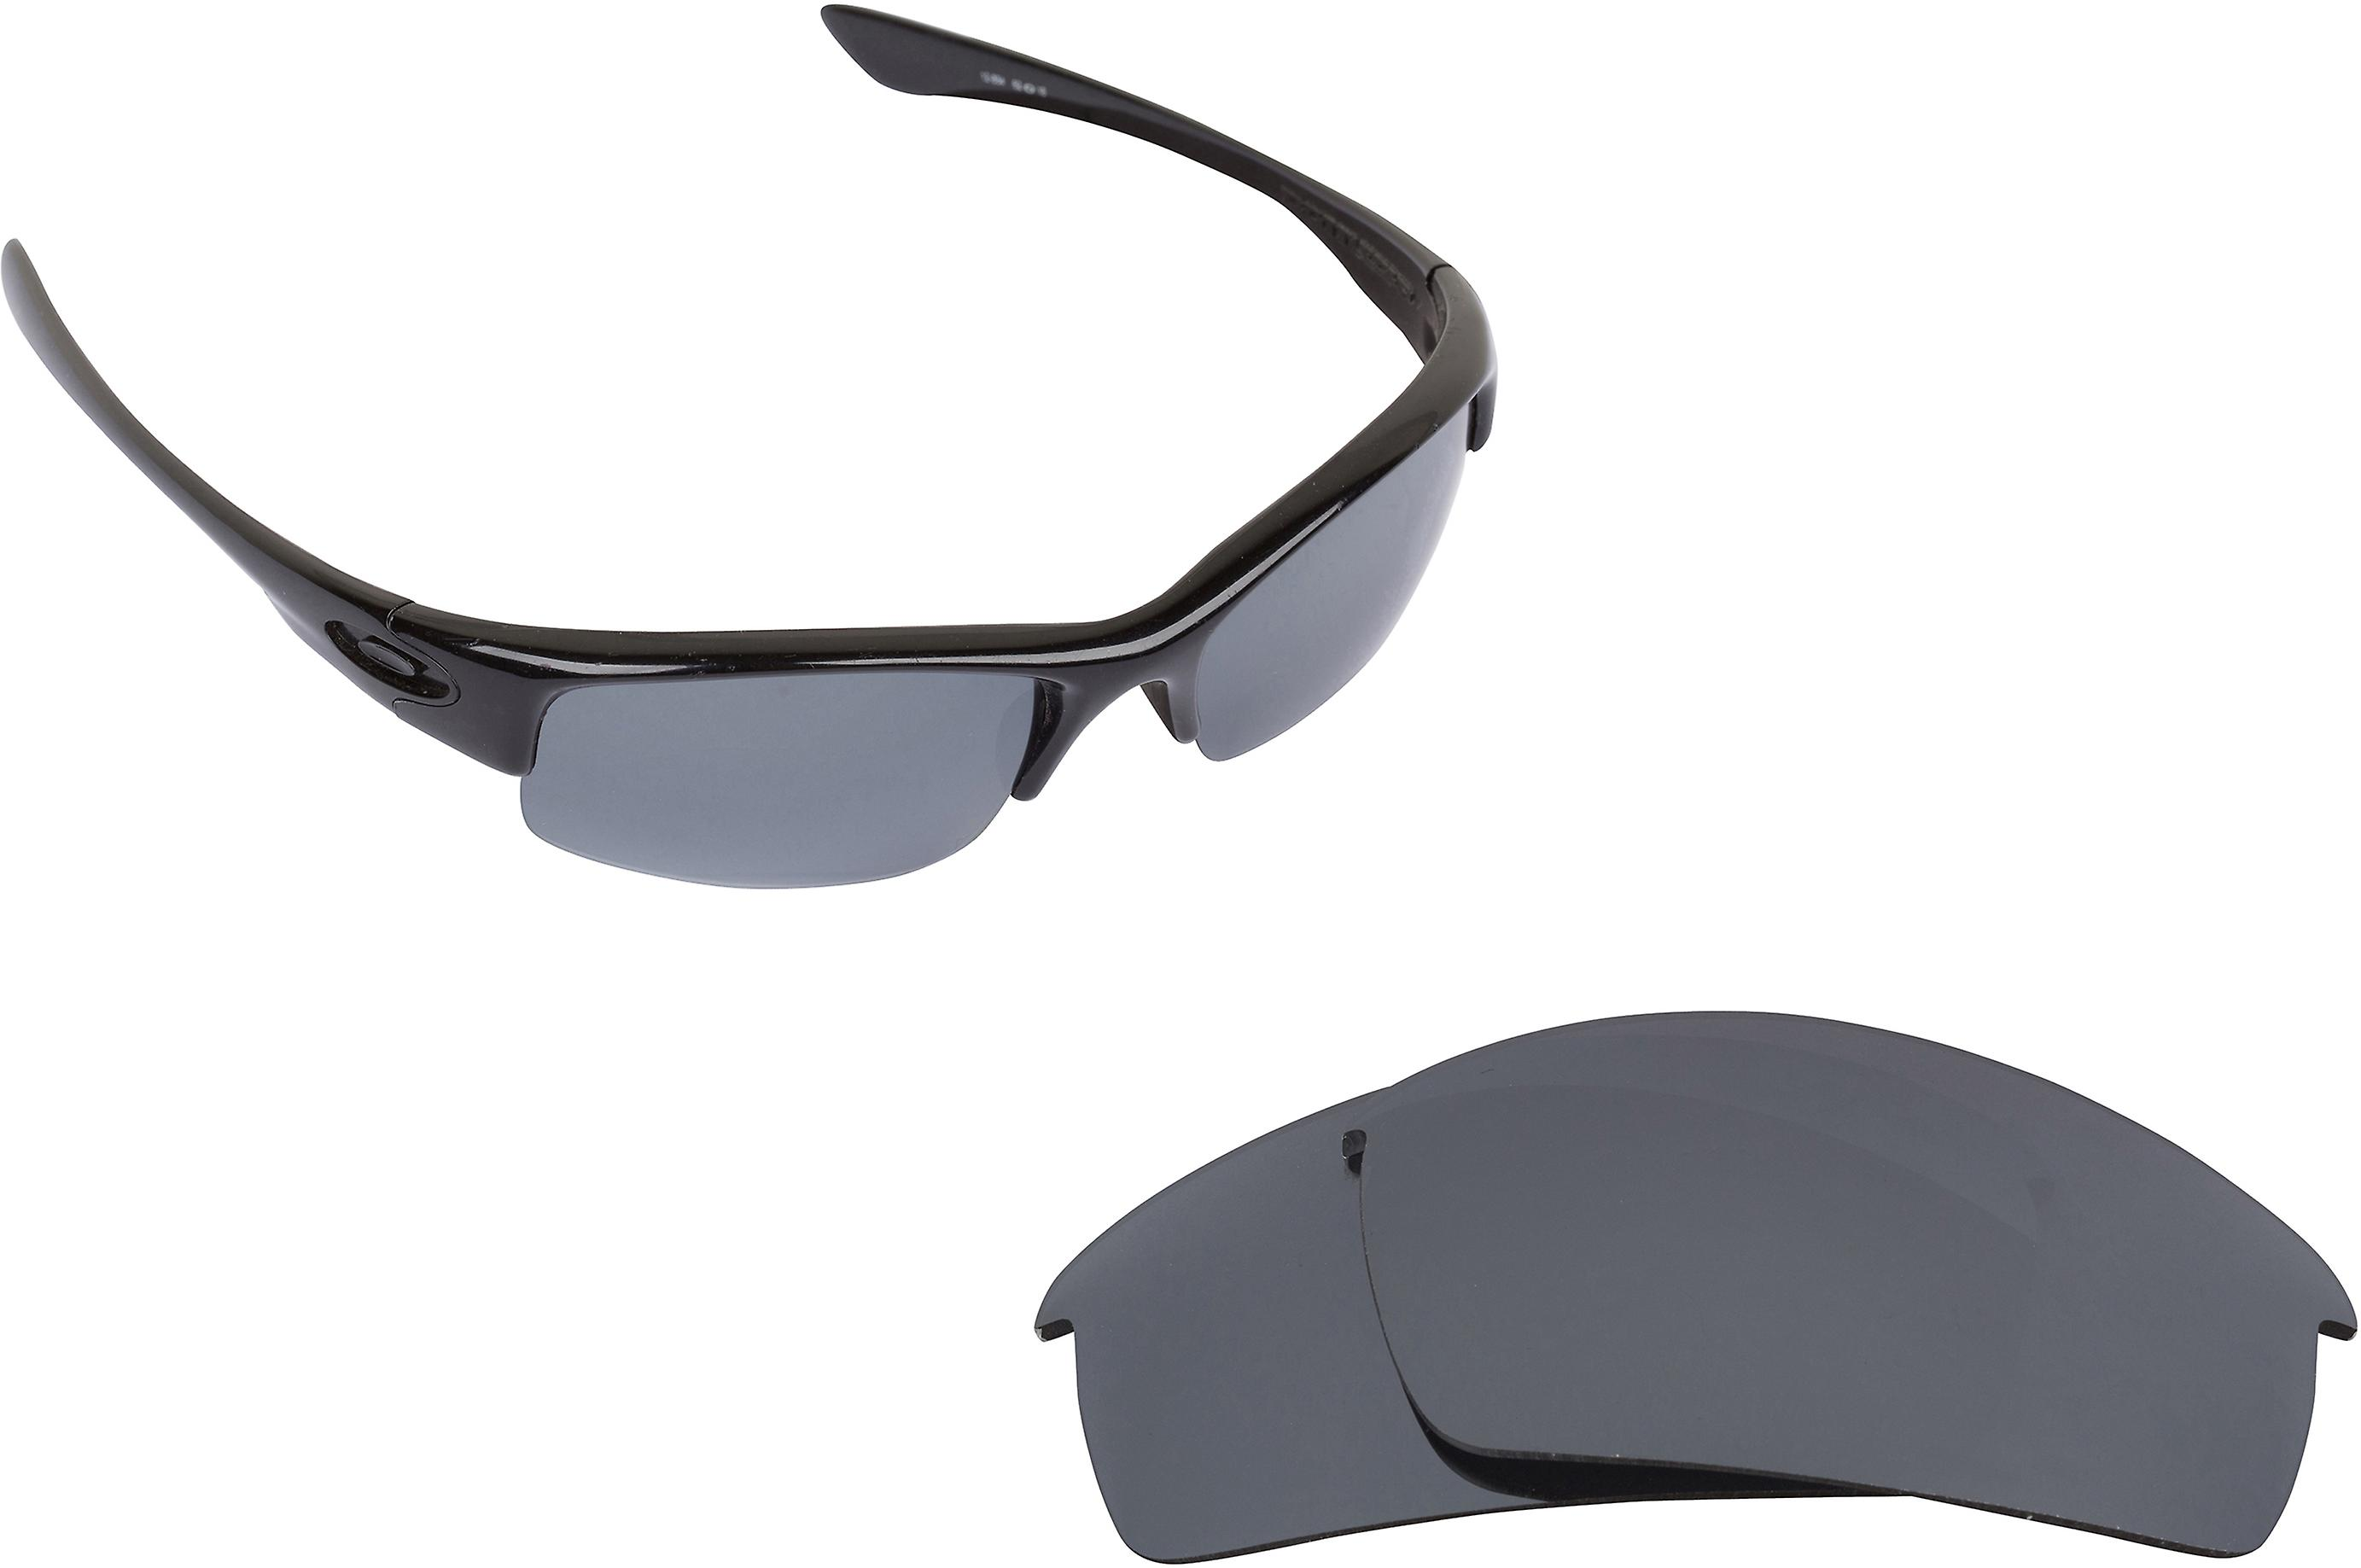 Bottlecap Replacement Lenses Polarized Silver by SEEK fits OAKLEY Sunglasses a1be5e3a3d3